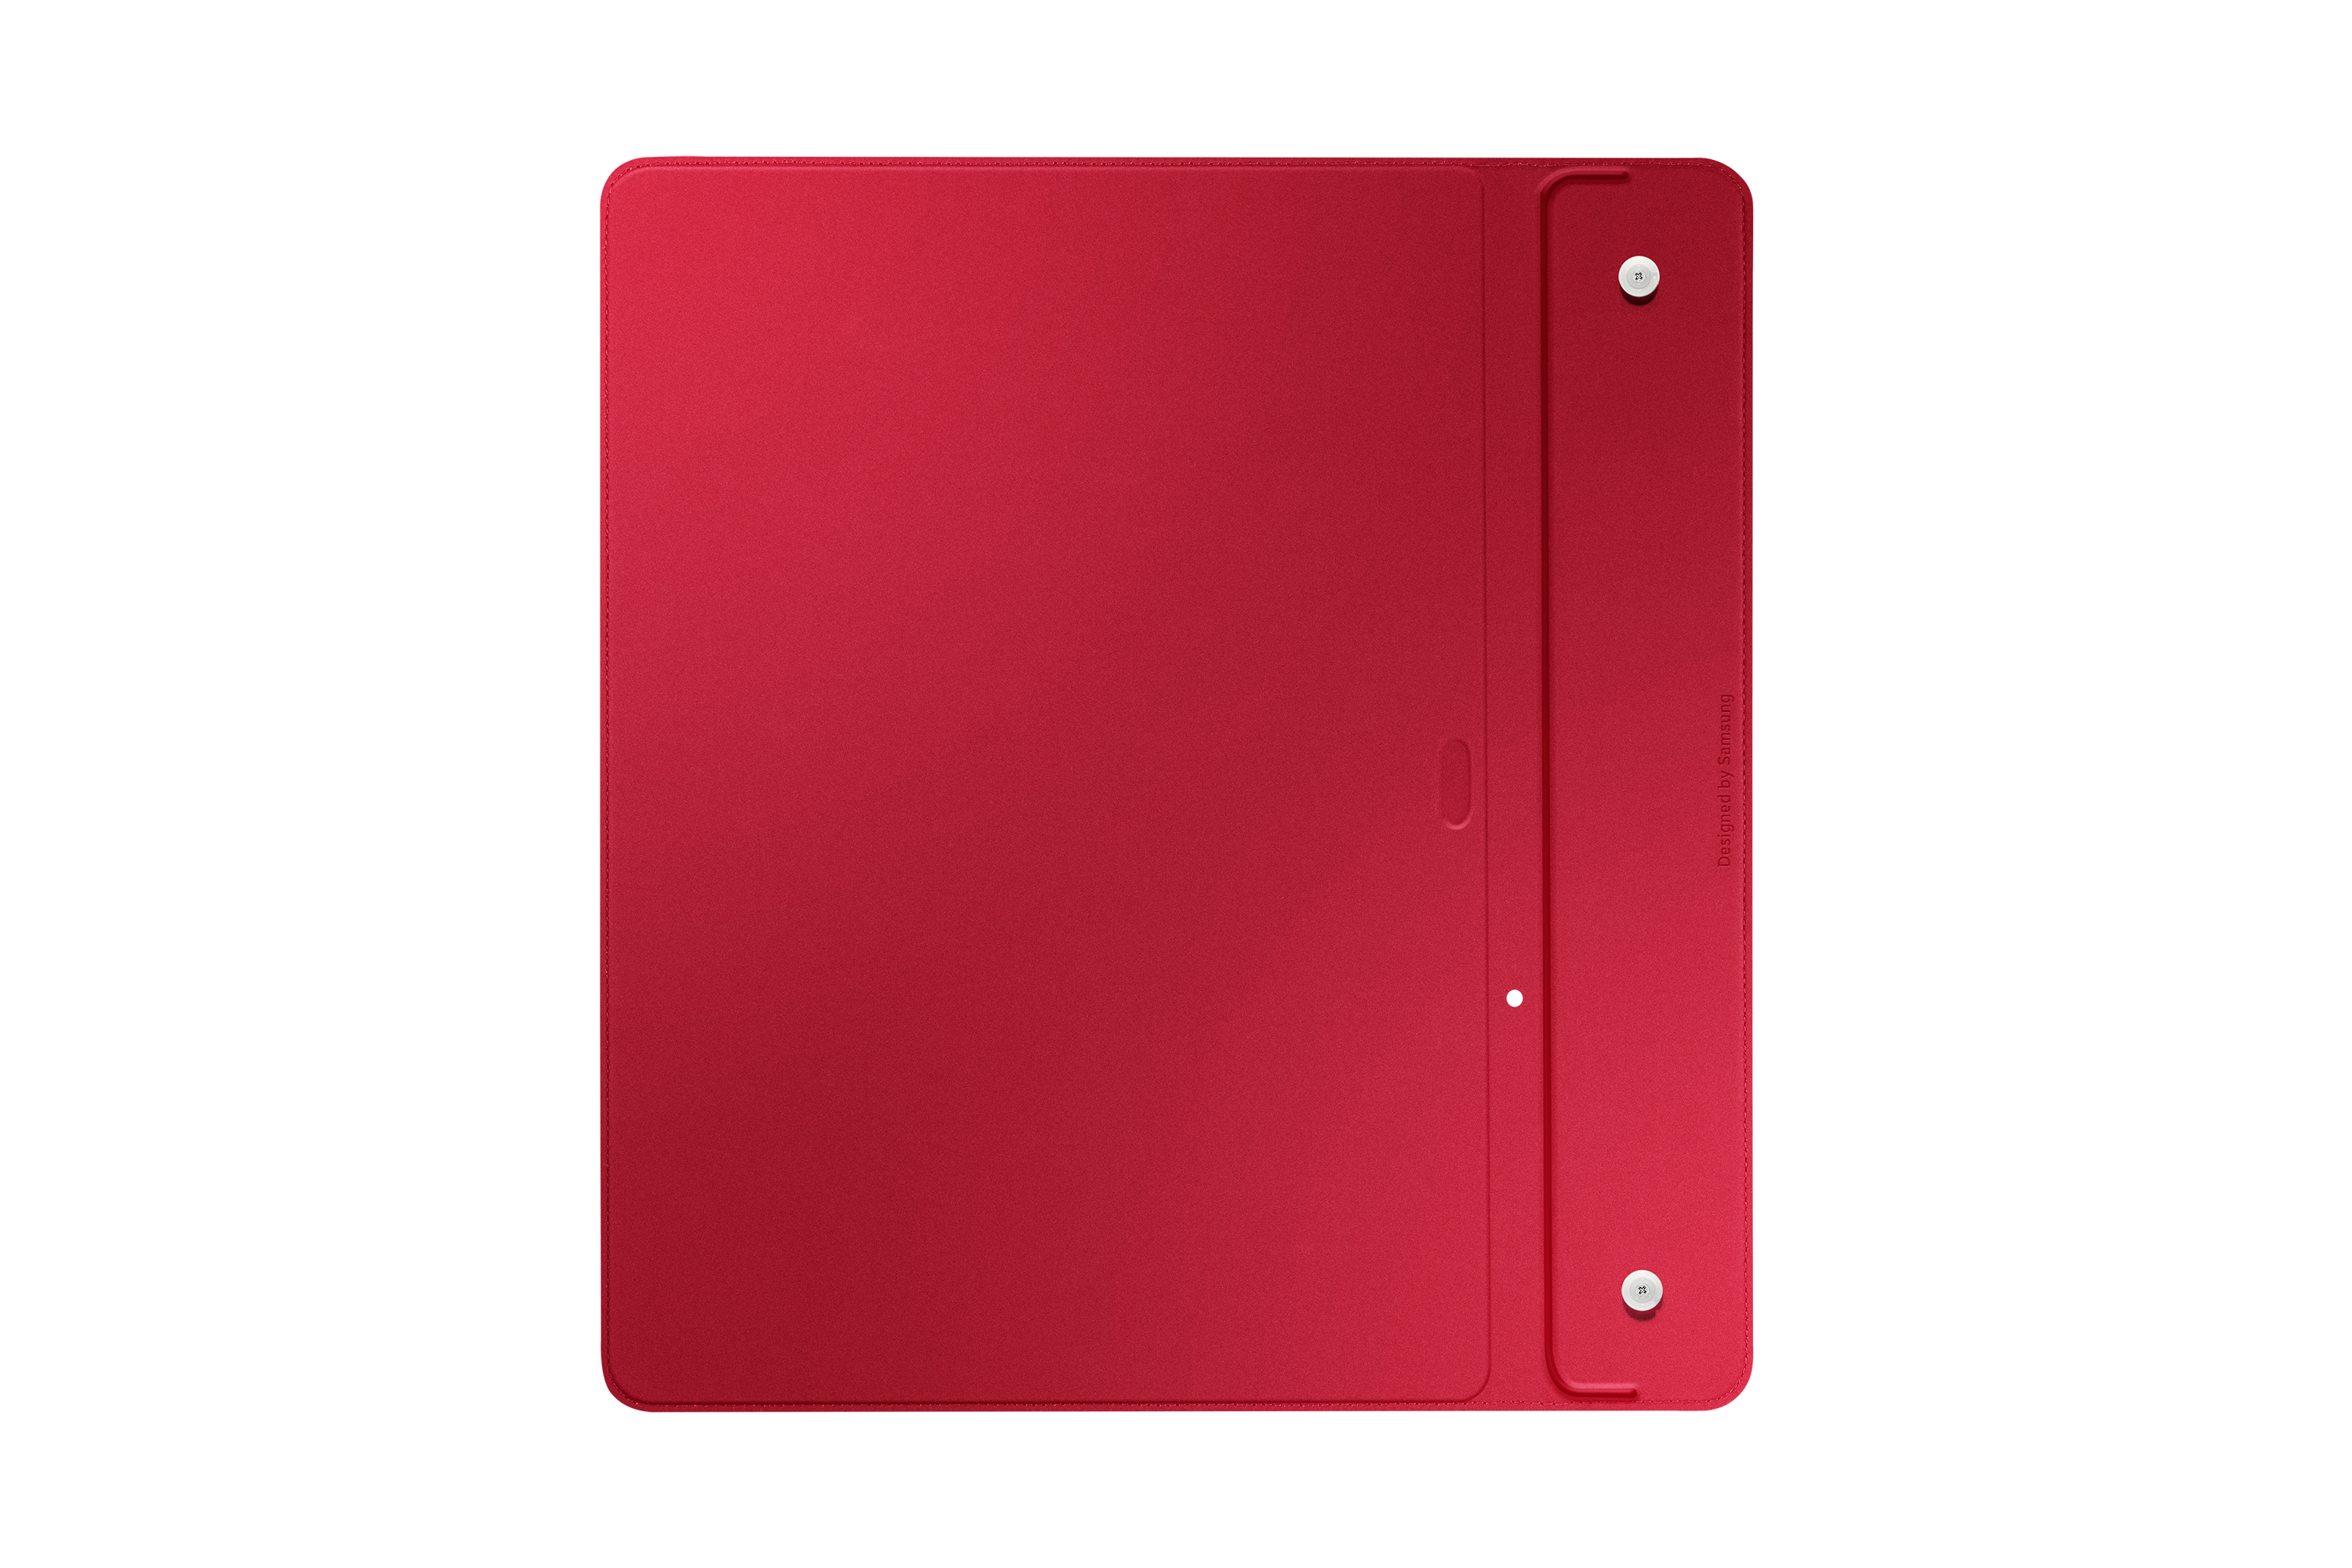 EF-DT800B Dynamic Red